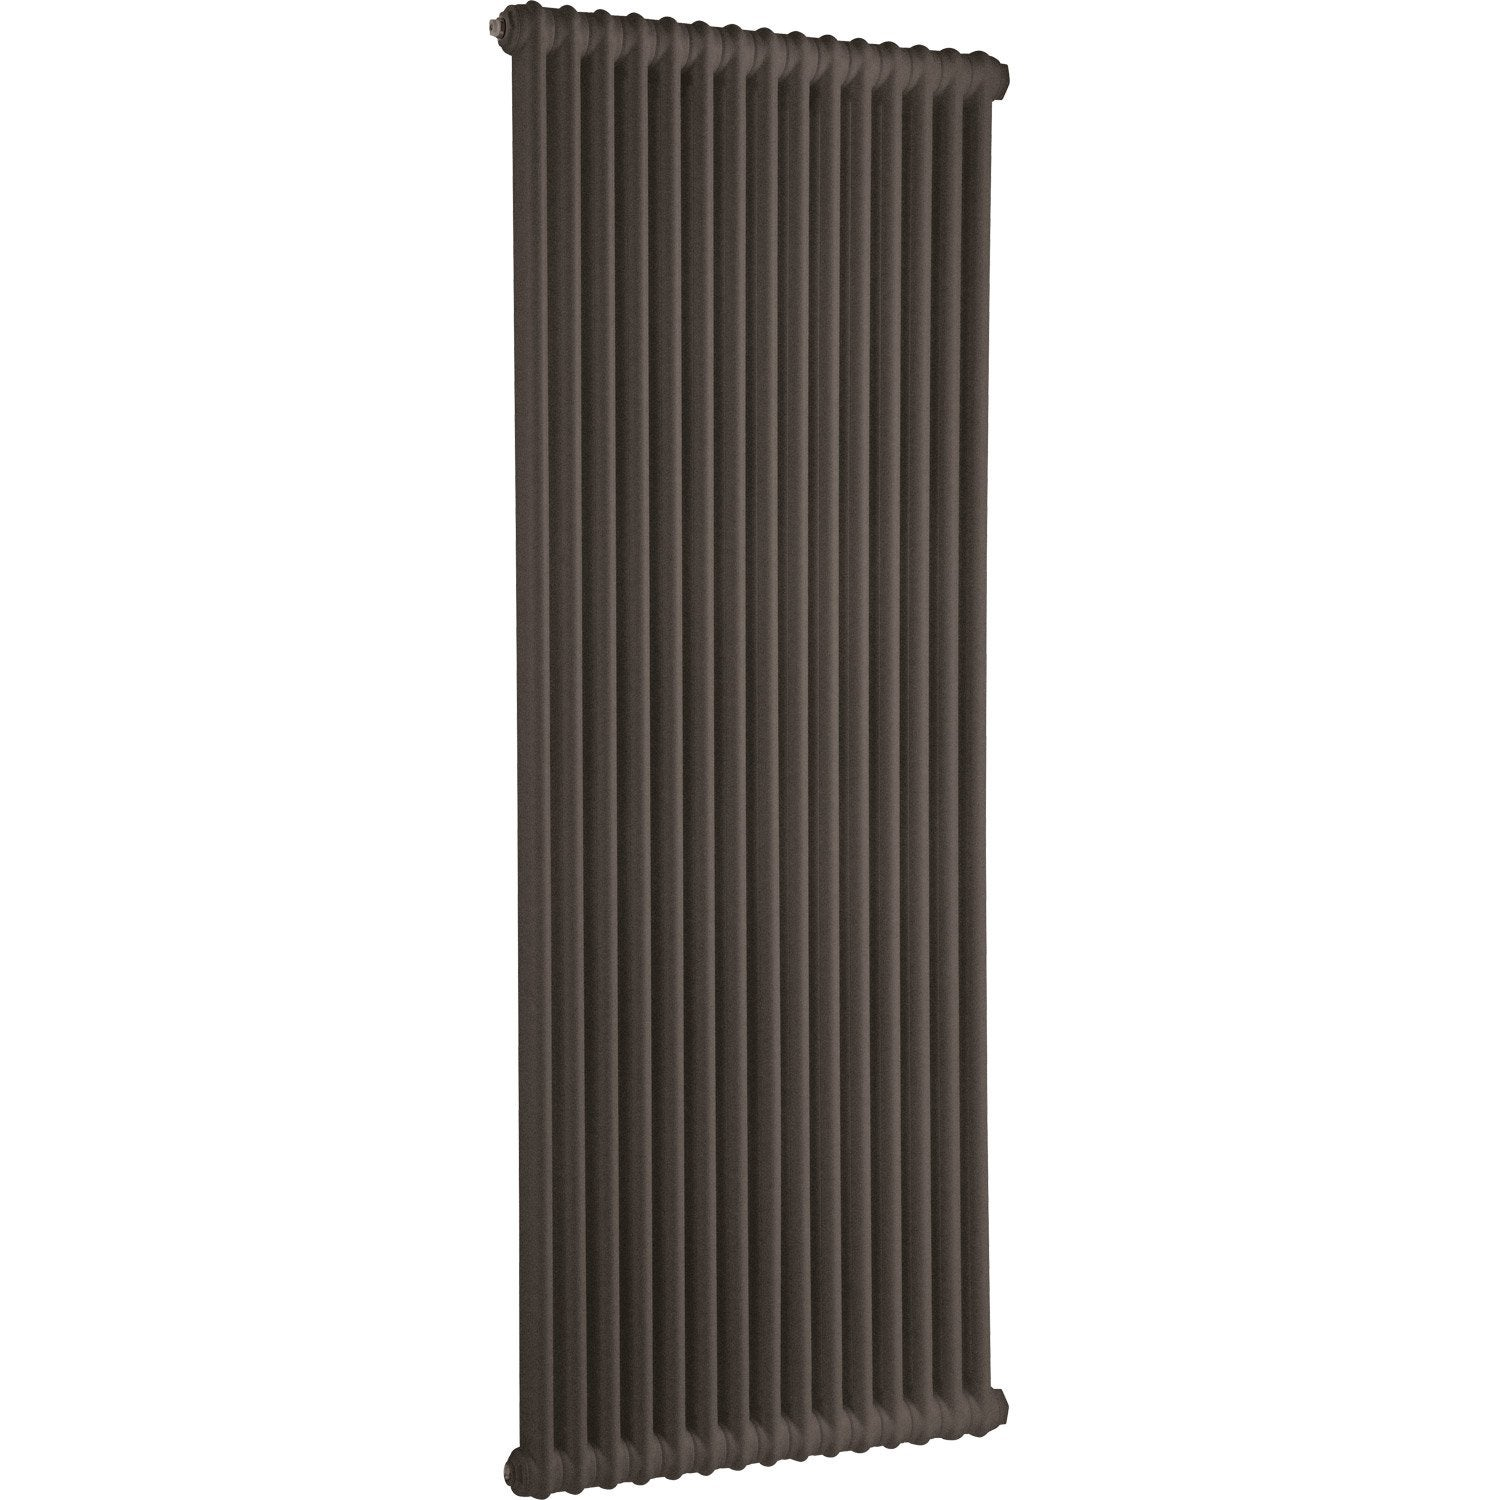 radiateur chauffage central tesi marron cm 1864 w leroy merlin. Black Bedroom Furniture Sets. Home Design Ideas